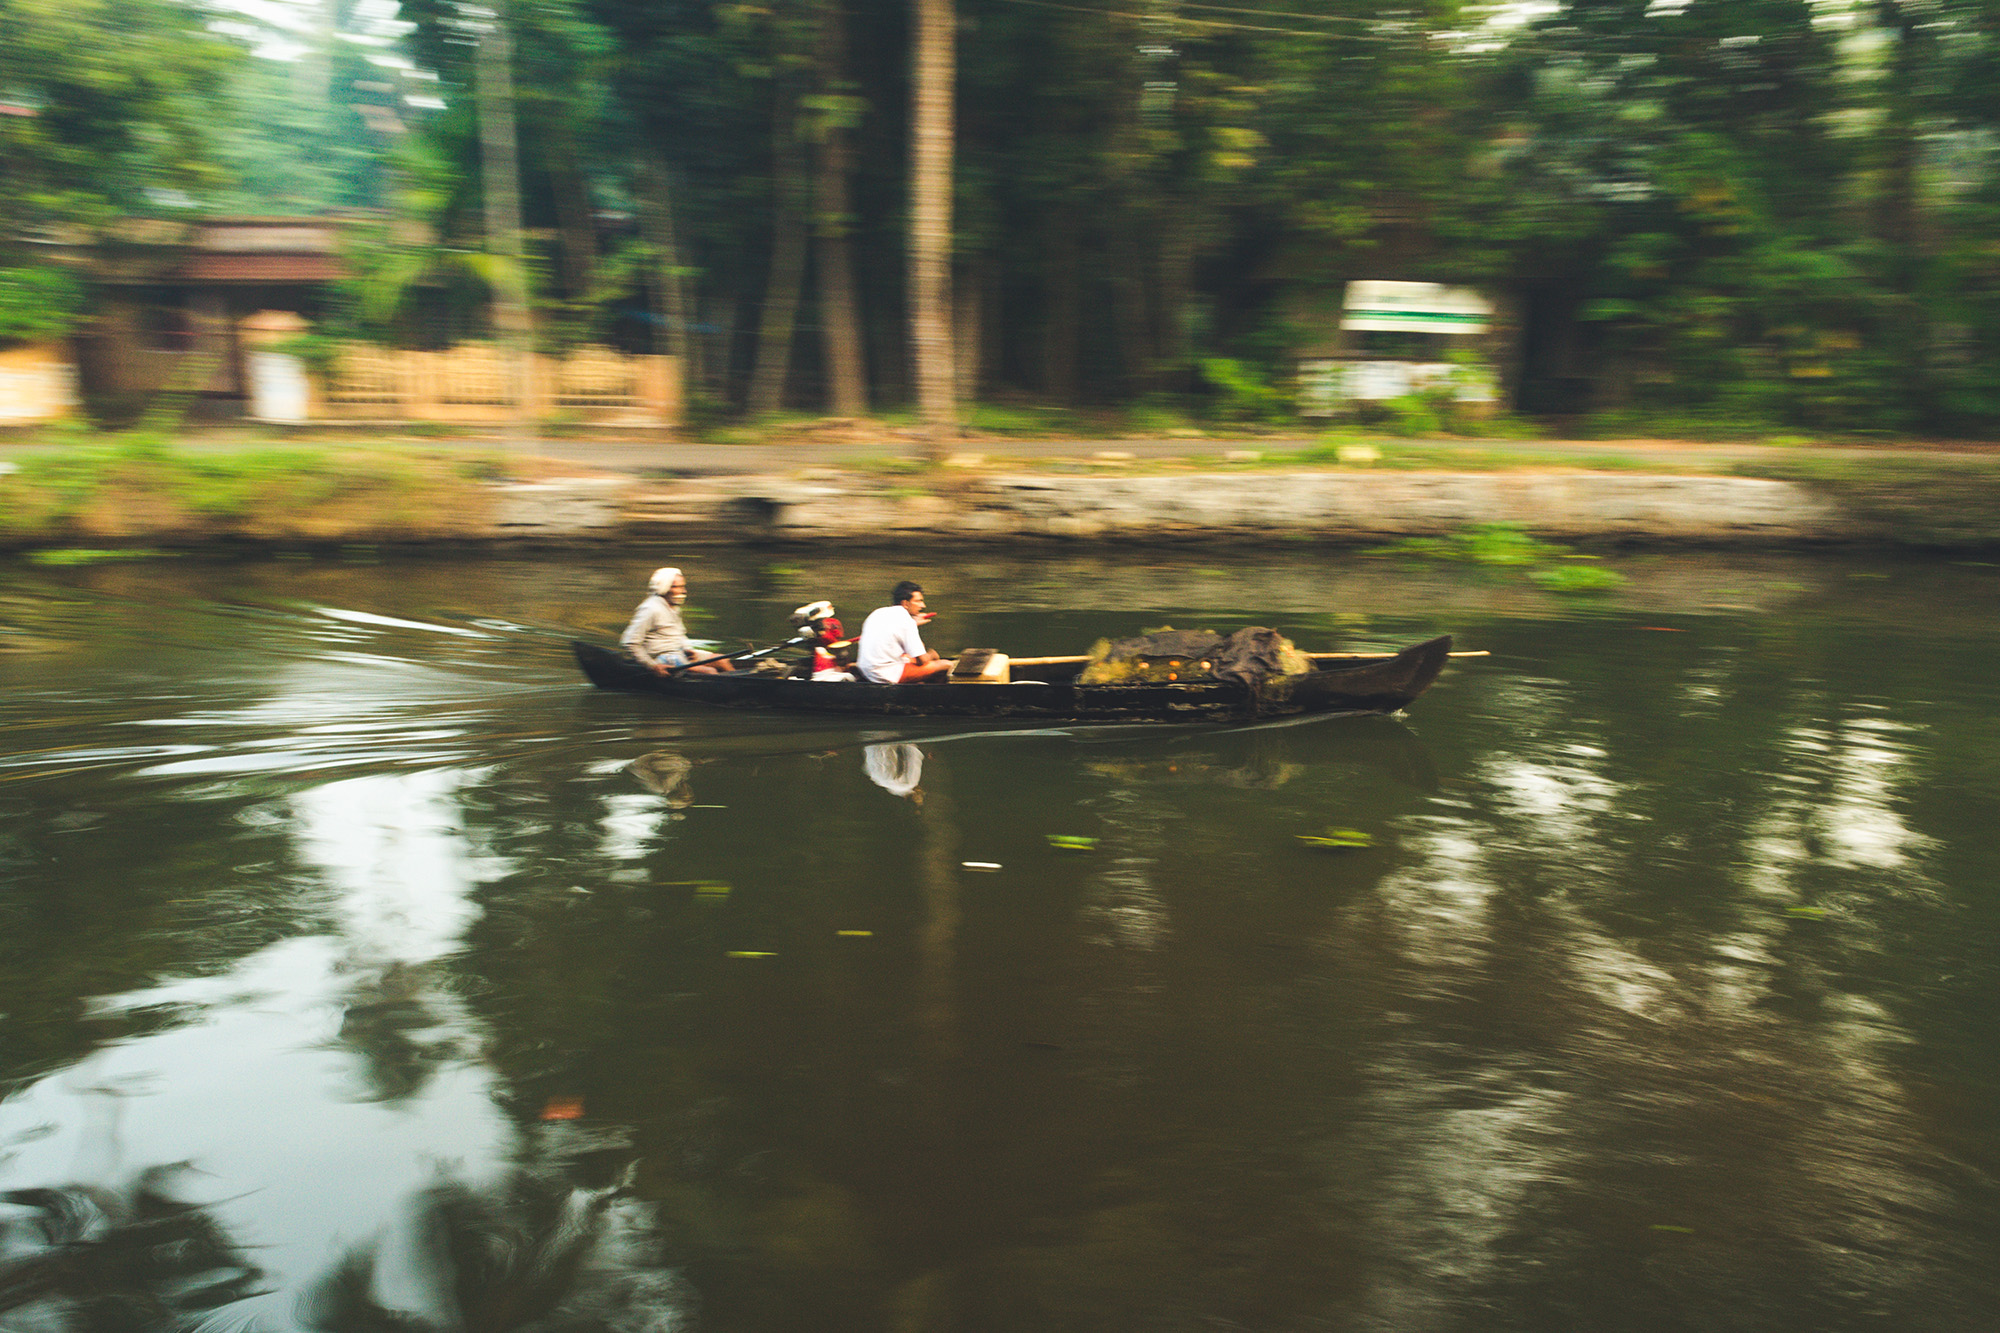 This photo was taken in the early hours of the morning. These two men starts the journey to earn their livelihood on their small fishing boat and net. Fishing is the main livelihood for these backwater people.